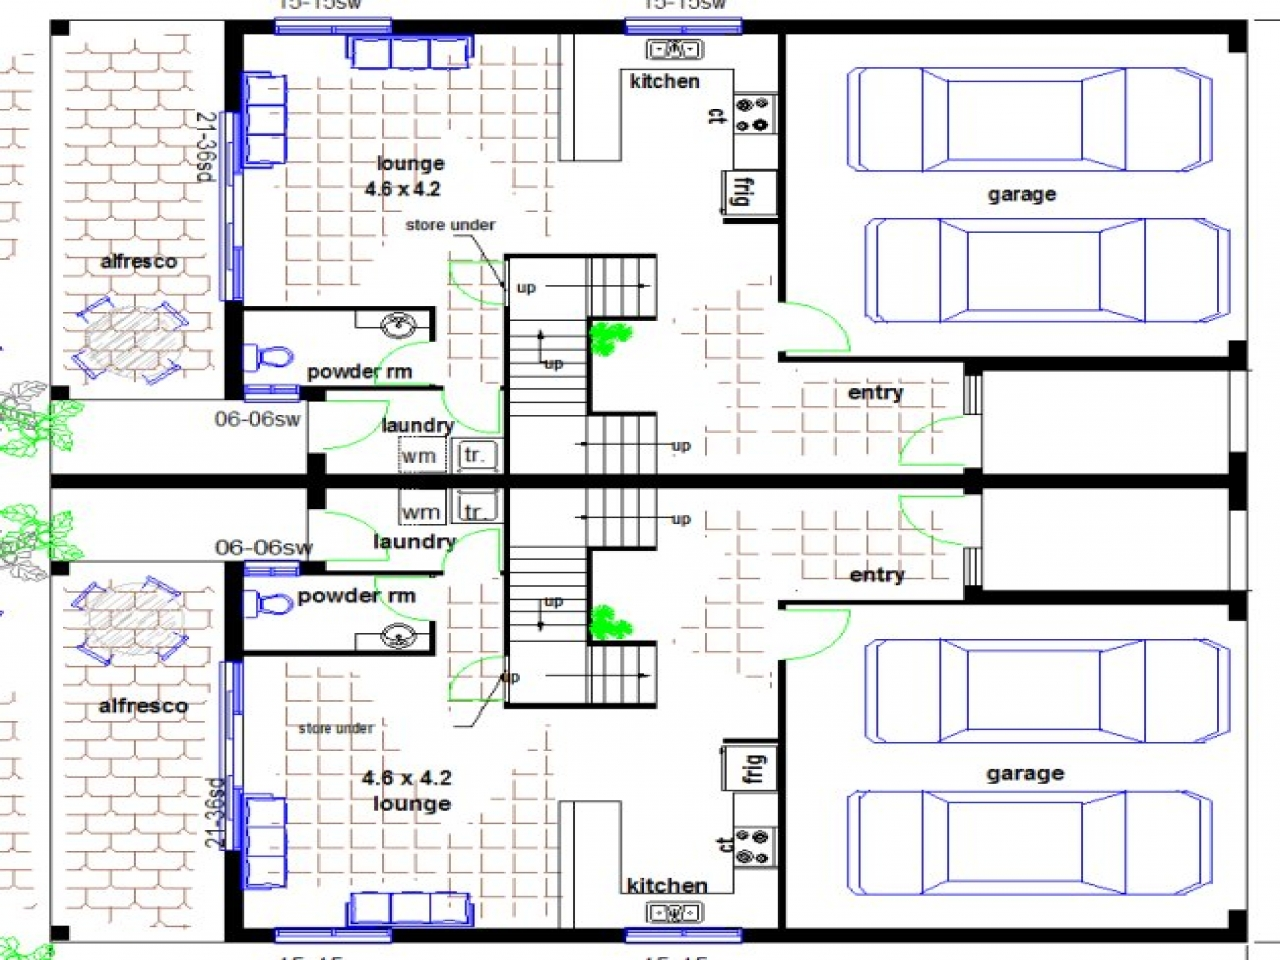 Townhouse floor plans with garage townhouse floor plans for Victorian townhouse plans